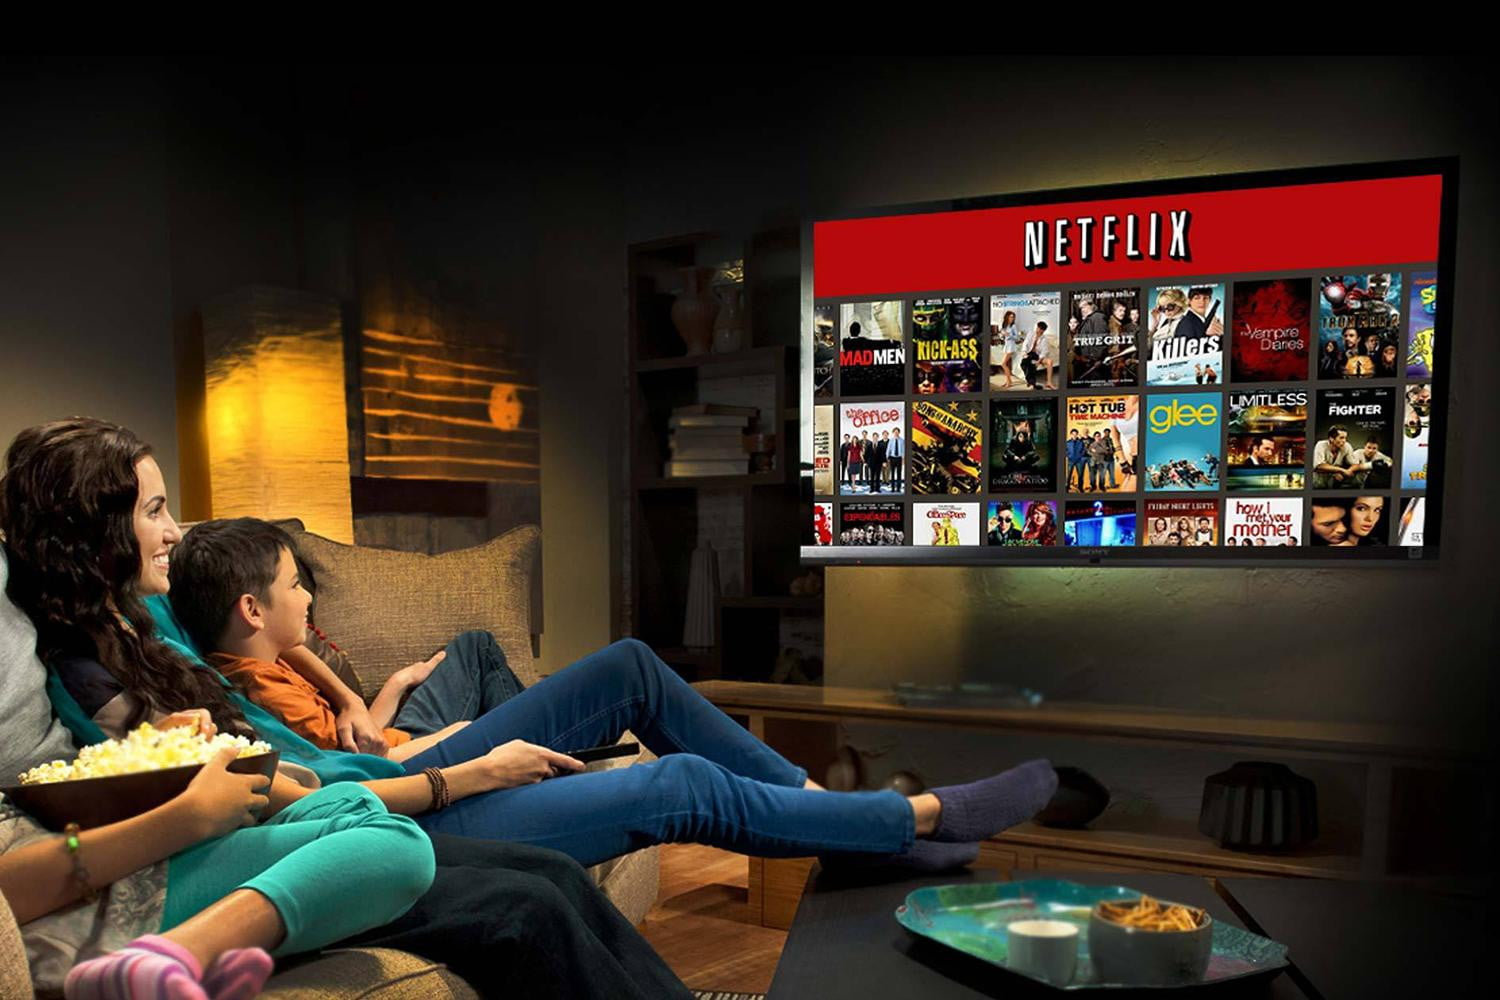 All Netflix premieres in Mexico in May 2018